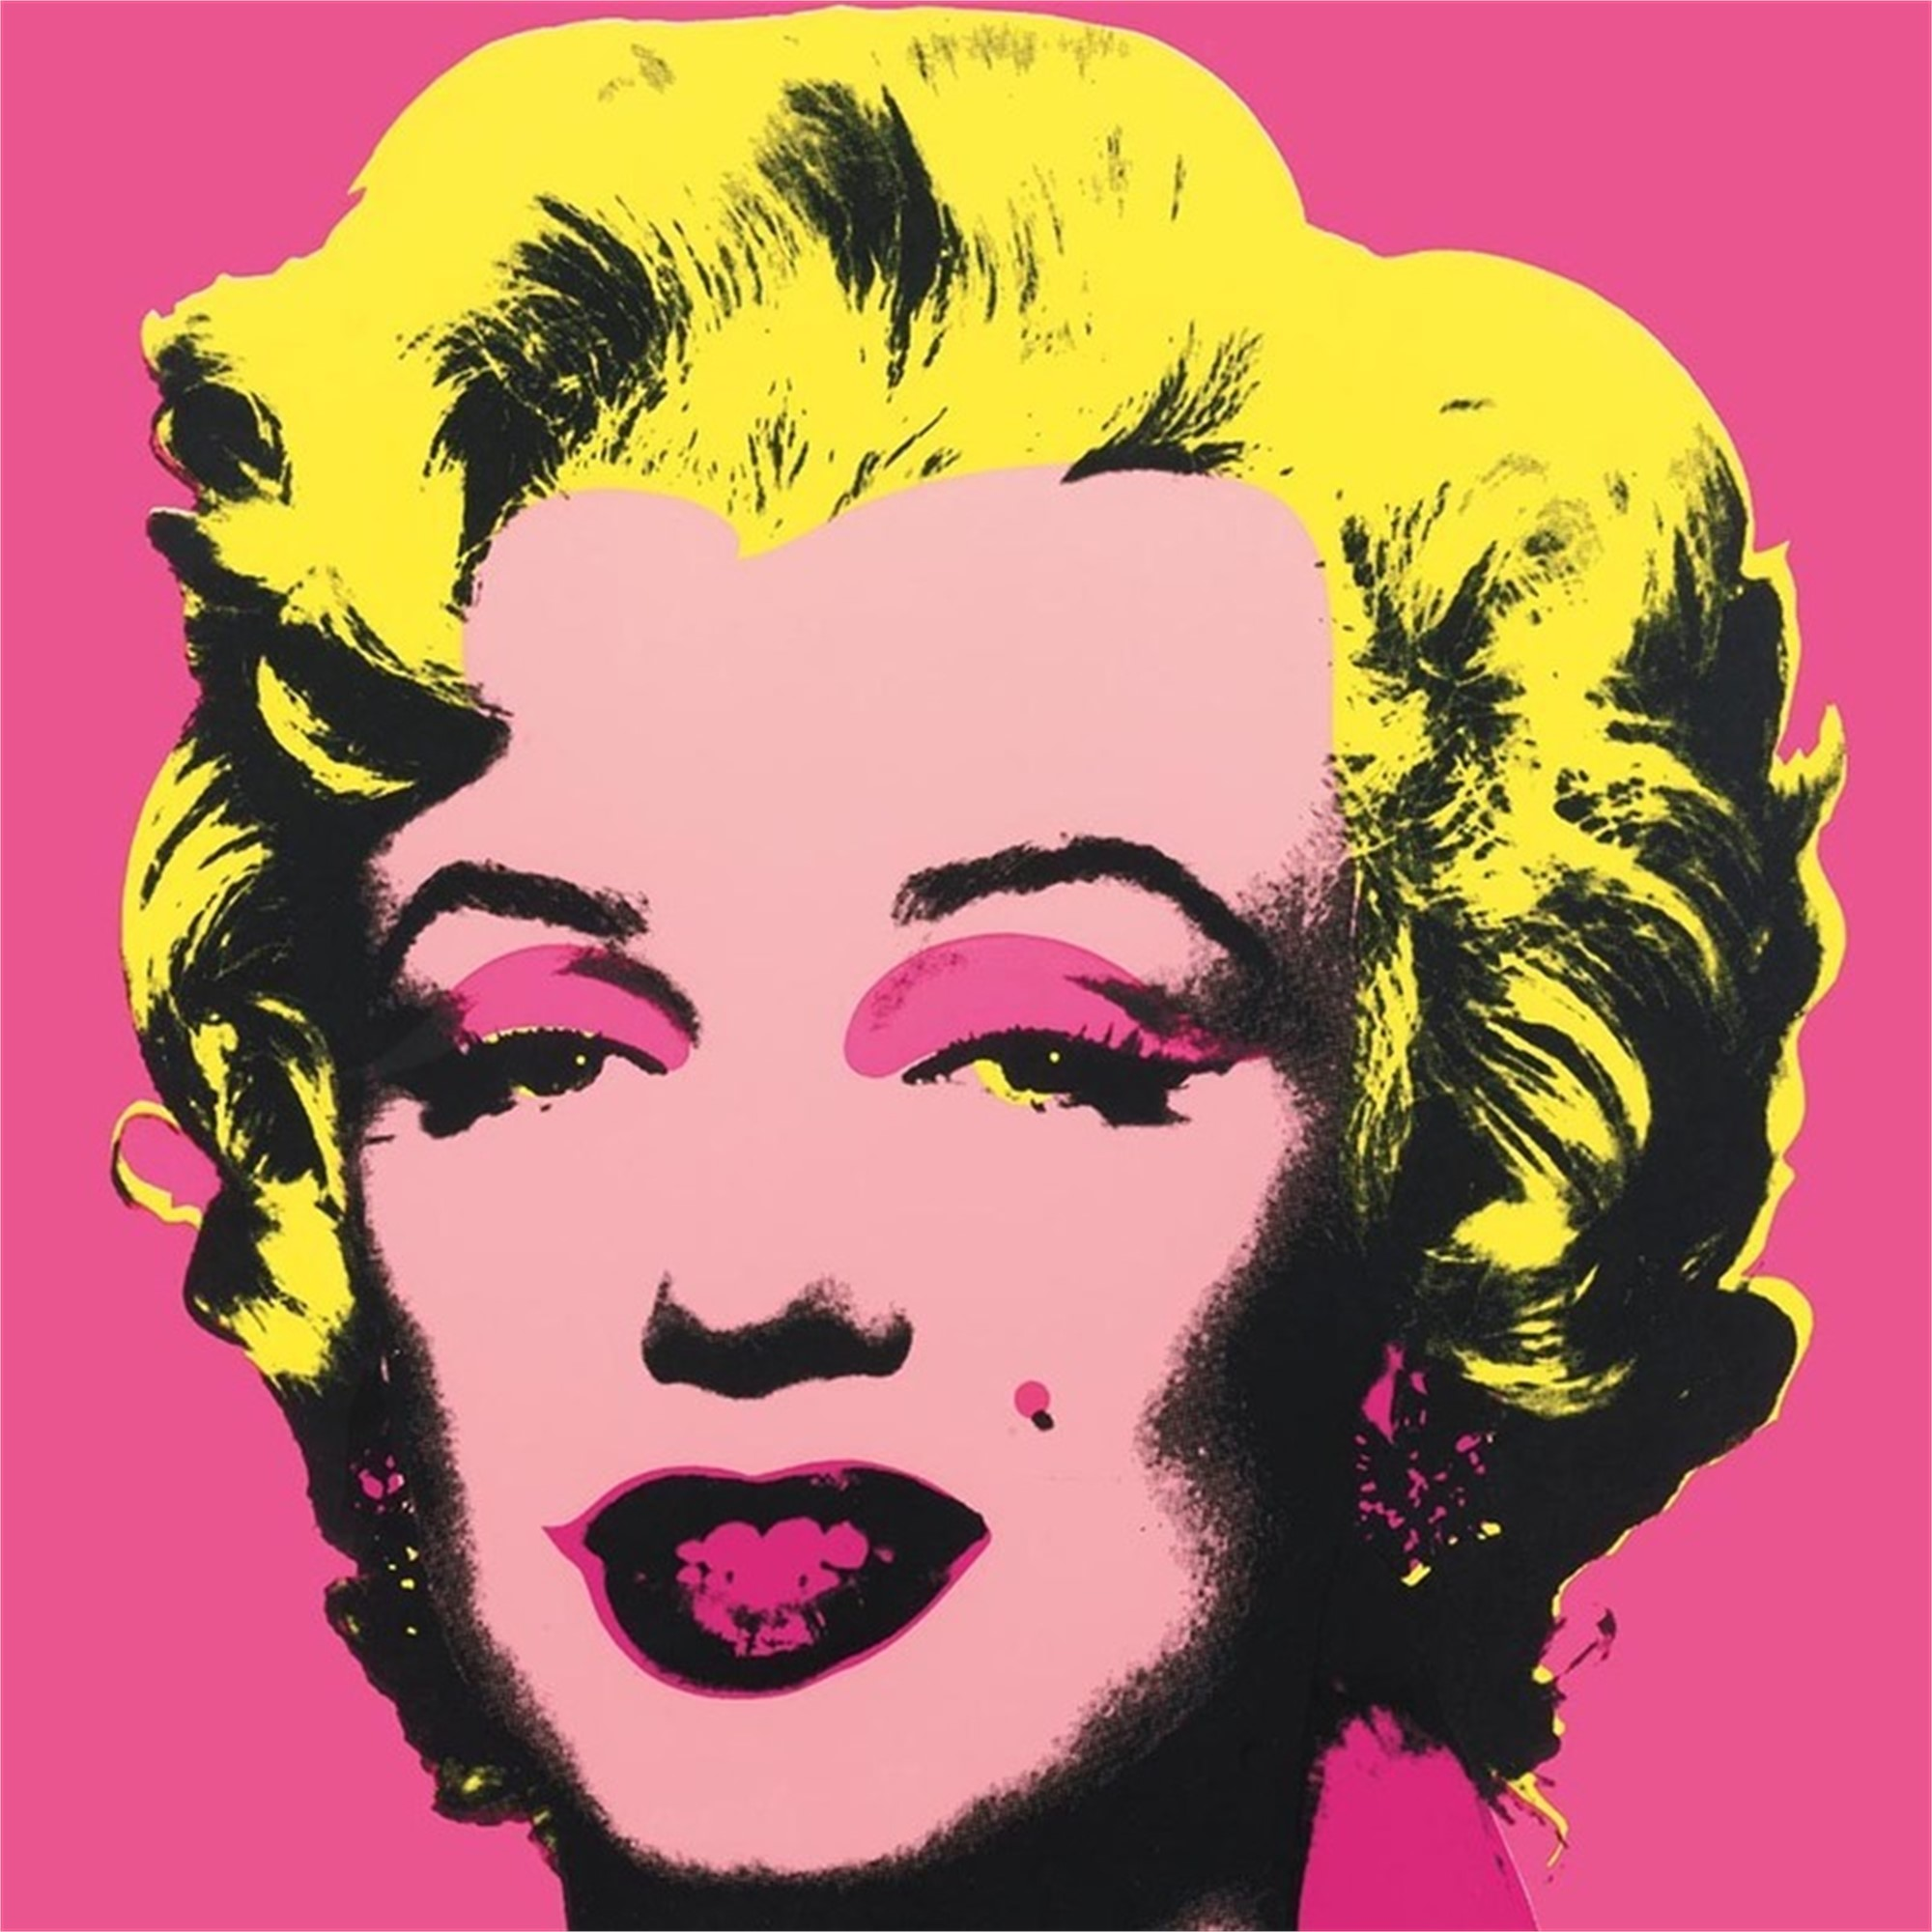 Marilyn 31 From the Sunday B. Morning Edition by Andy Warhol